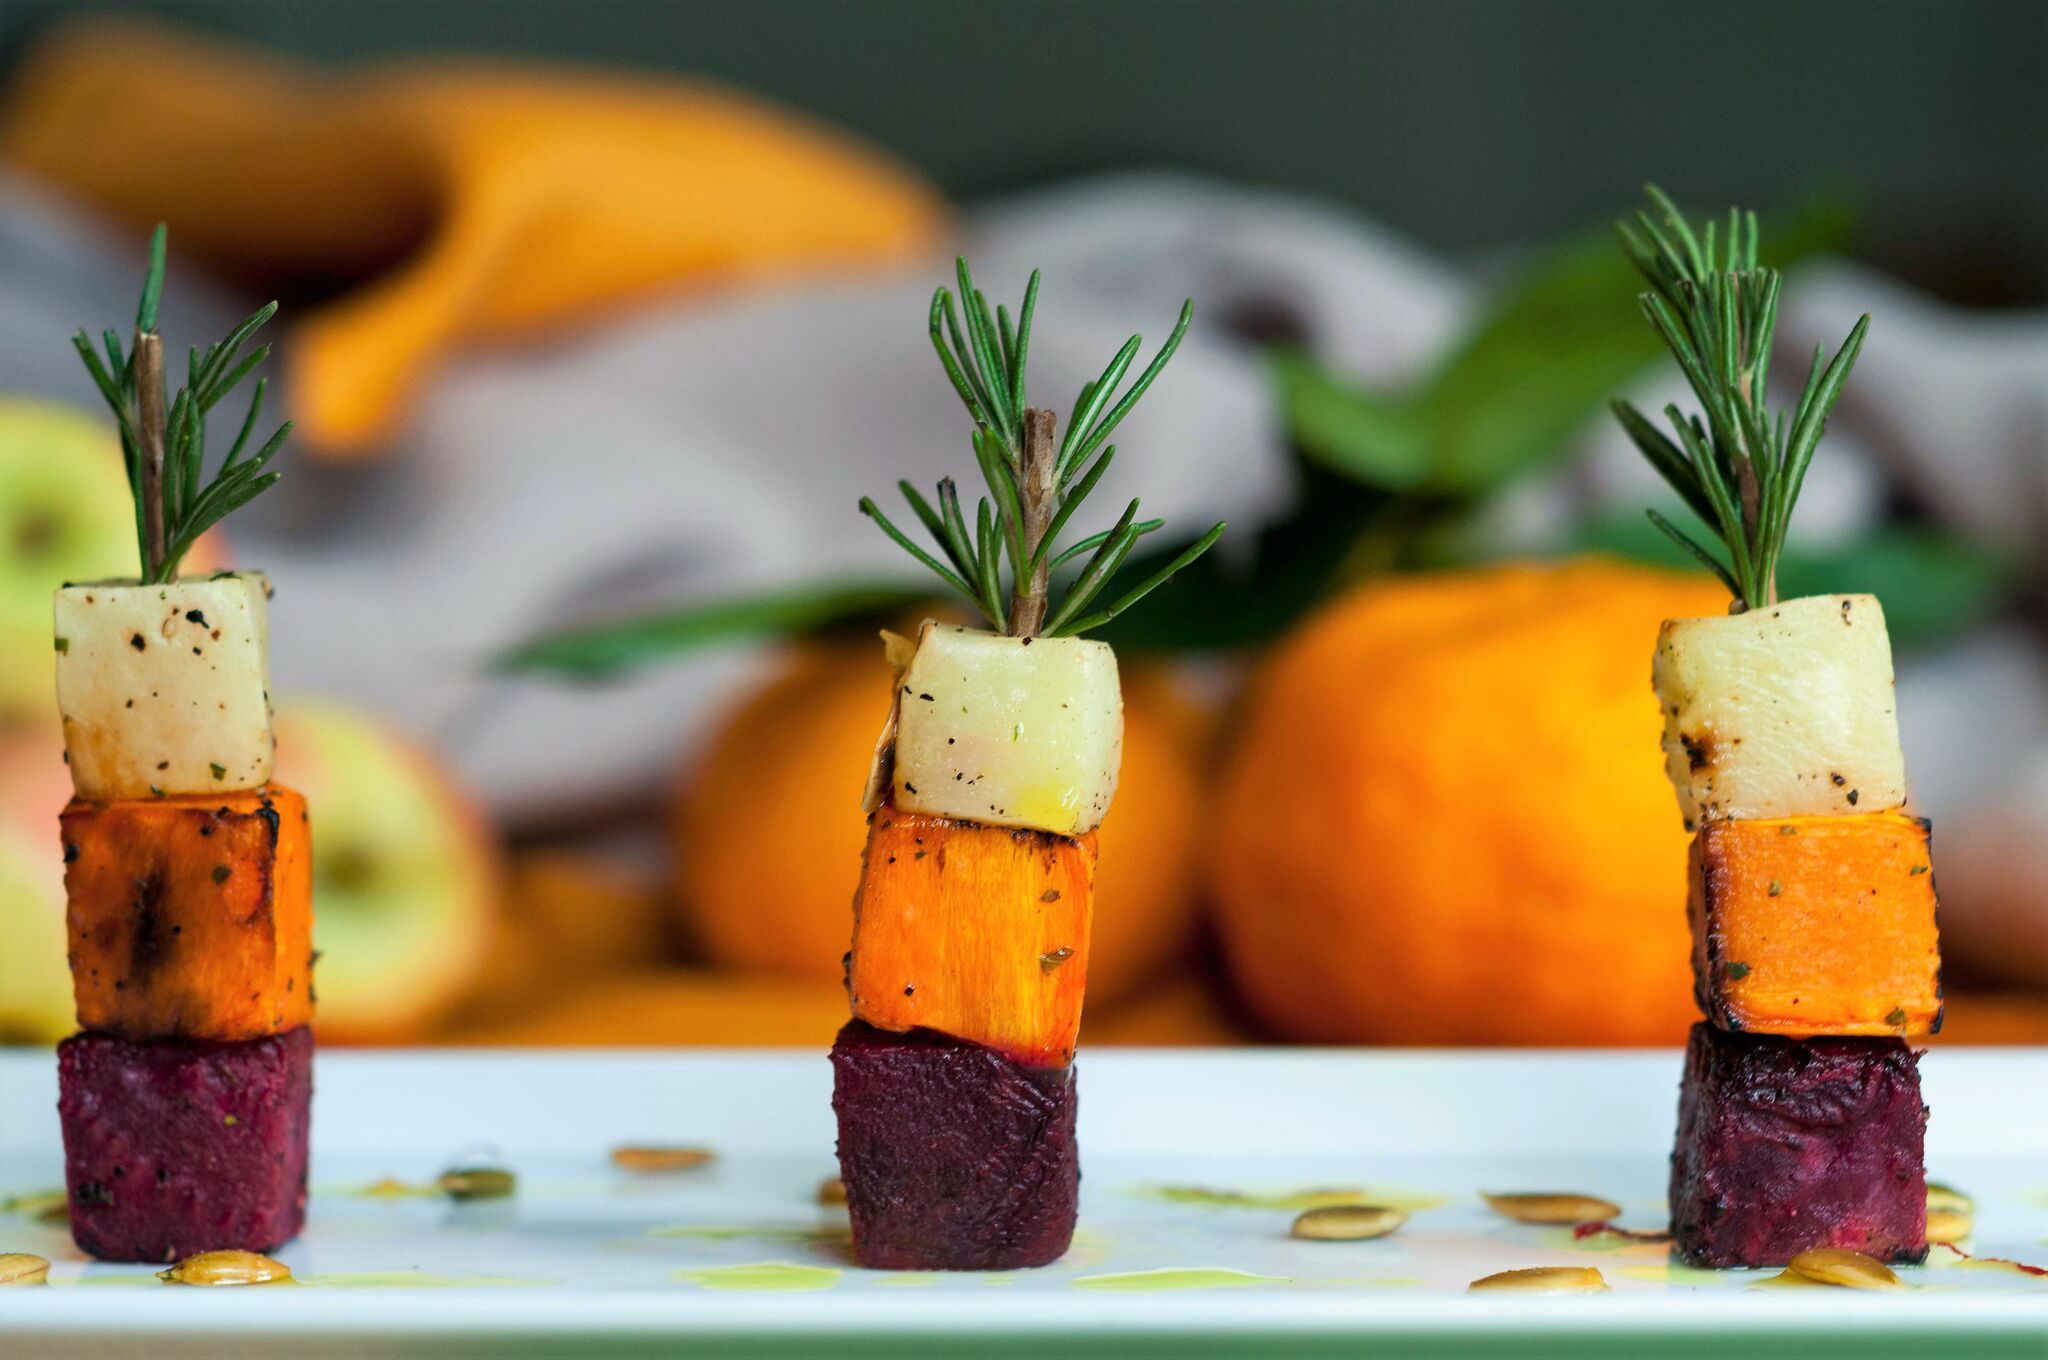 Diving into Fall Foods! Roasted root vegetable skewers - the ultimate tray passed hors d'oeuvre to add to your Fall event menu for capturing the perfect flavors, colors, and textures that celebrate this magical season!